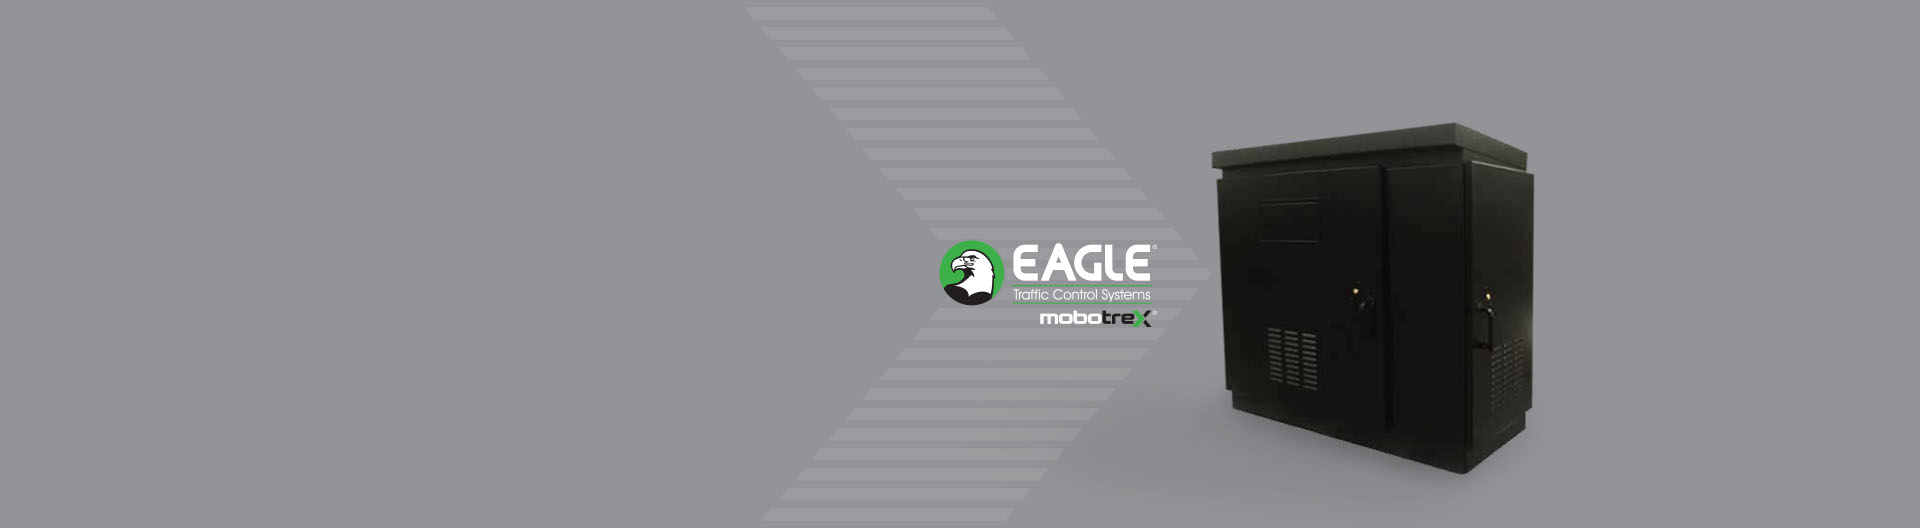 Eagle brand traffic control banner